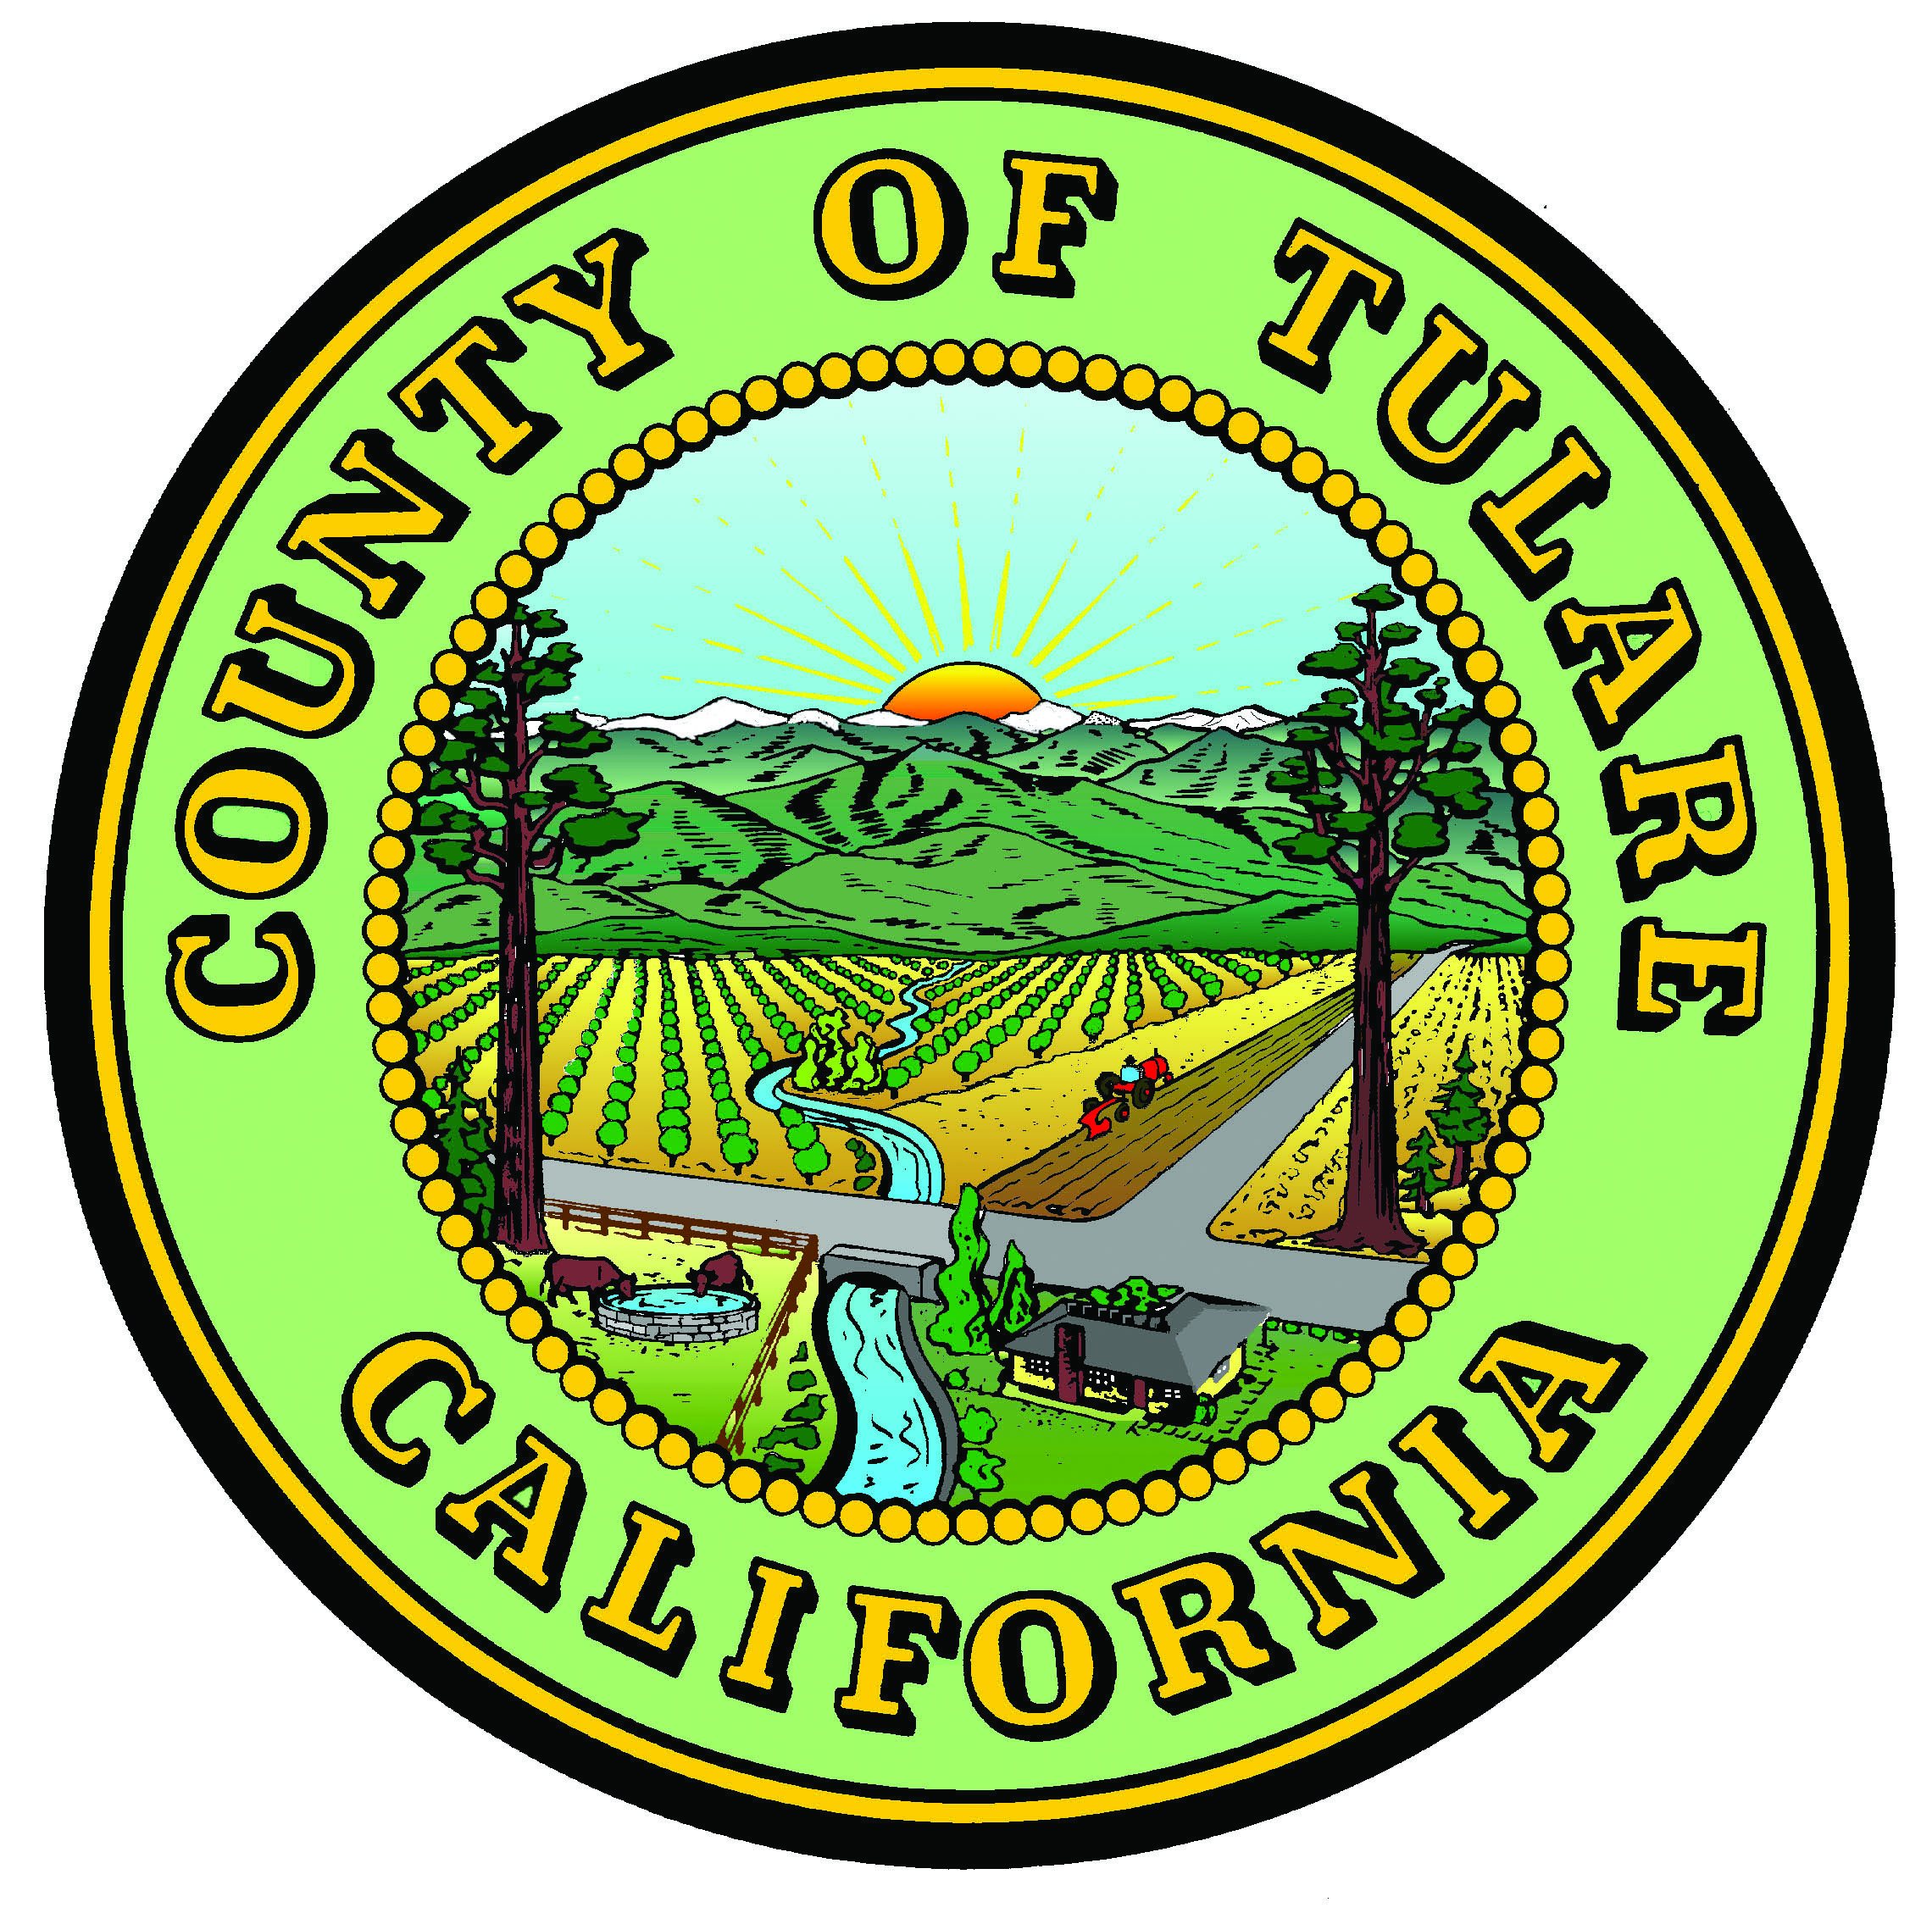 County of Tulare Board of Supervisors